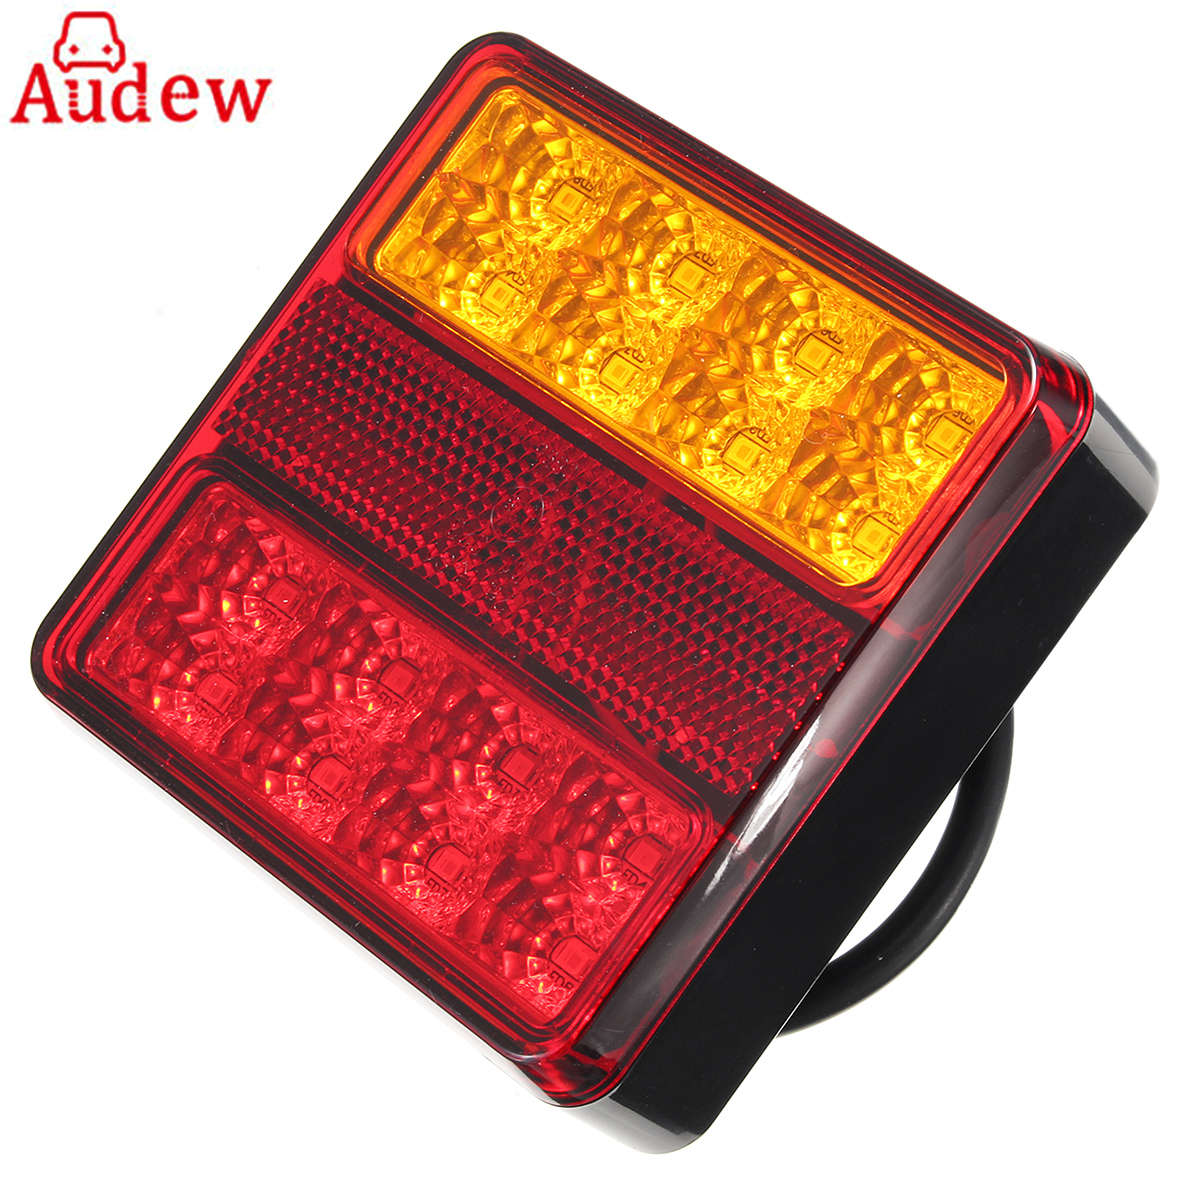 22LEDS Car Truck Rear Tail Light Warning Lights Rear Lamps Waterproof Tail Parts License Plate Lights for Trailer Truck Boat 12V maluokasa 2x 46 led car truck tail light rear lamps waterproof taillights rear turn indicator license plate lights for trailer